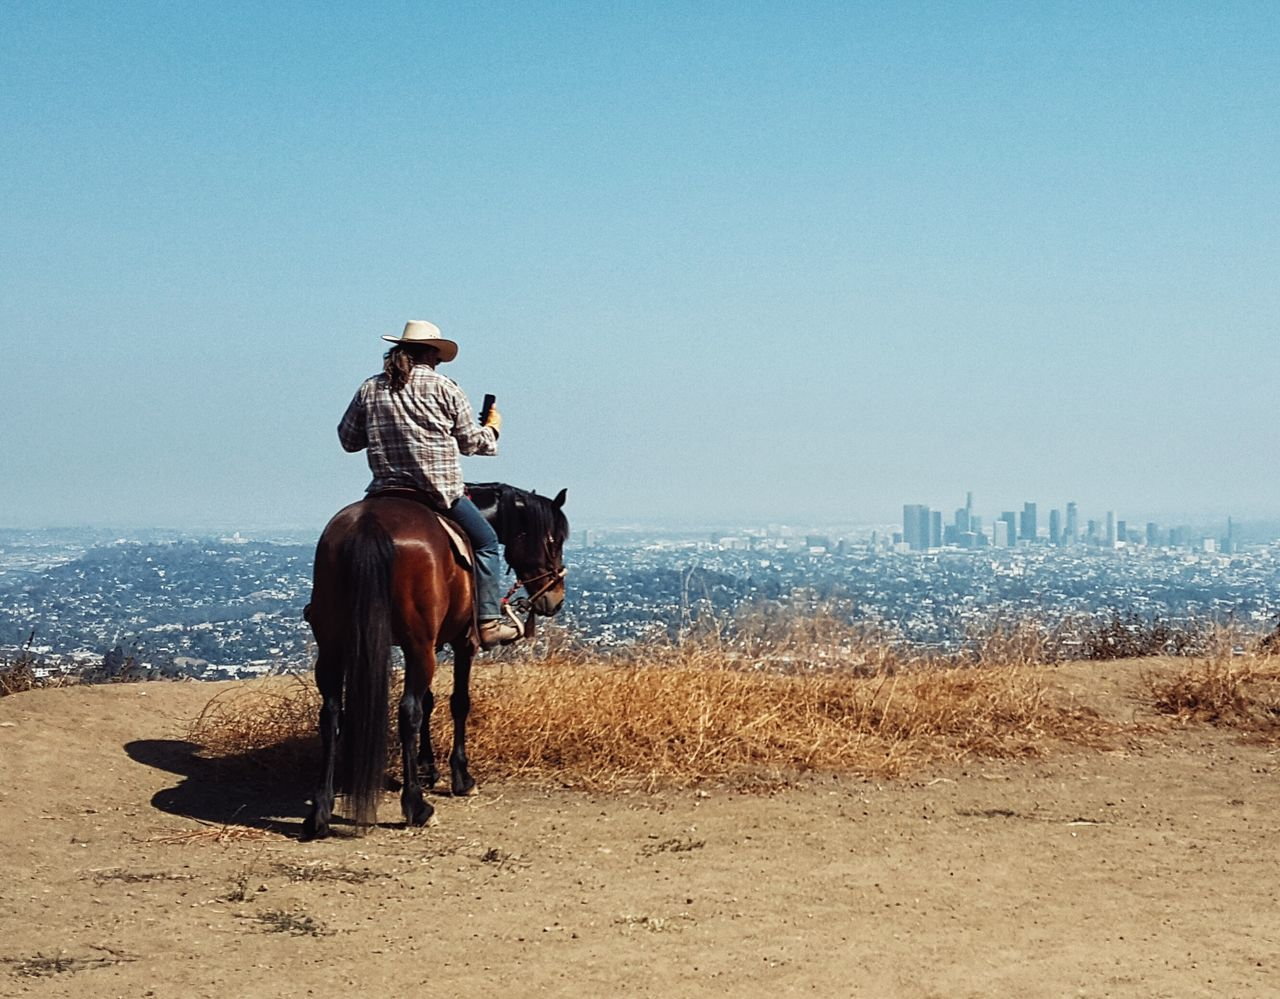 Beautiful stock photos of cowboy, Animal Themes, Casual Clothing, Cattle, City